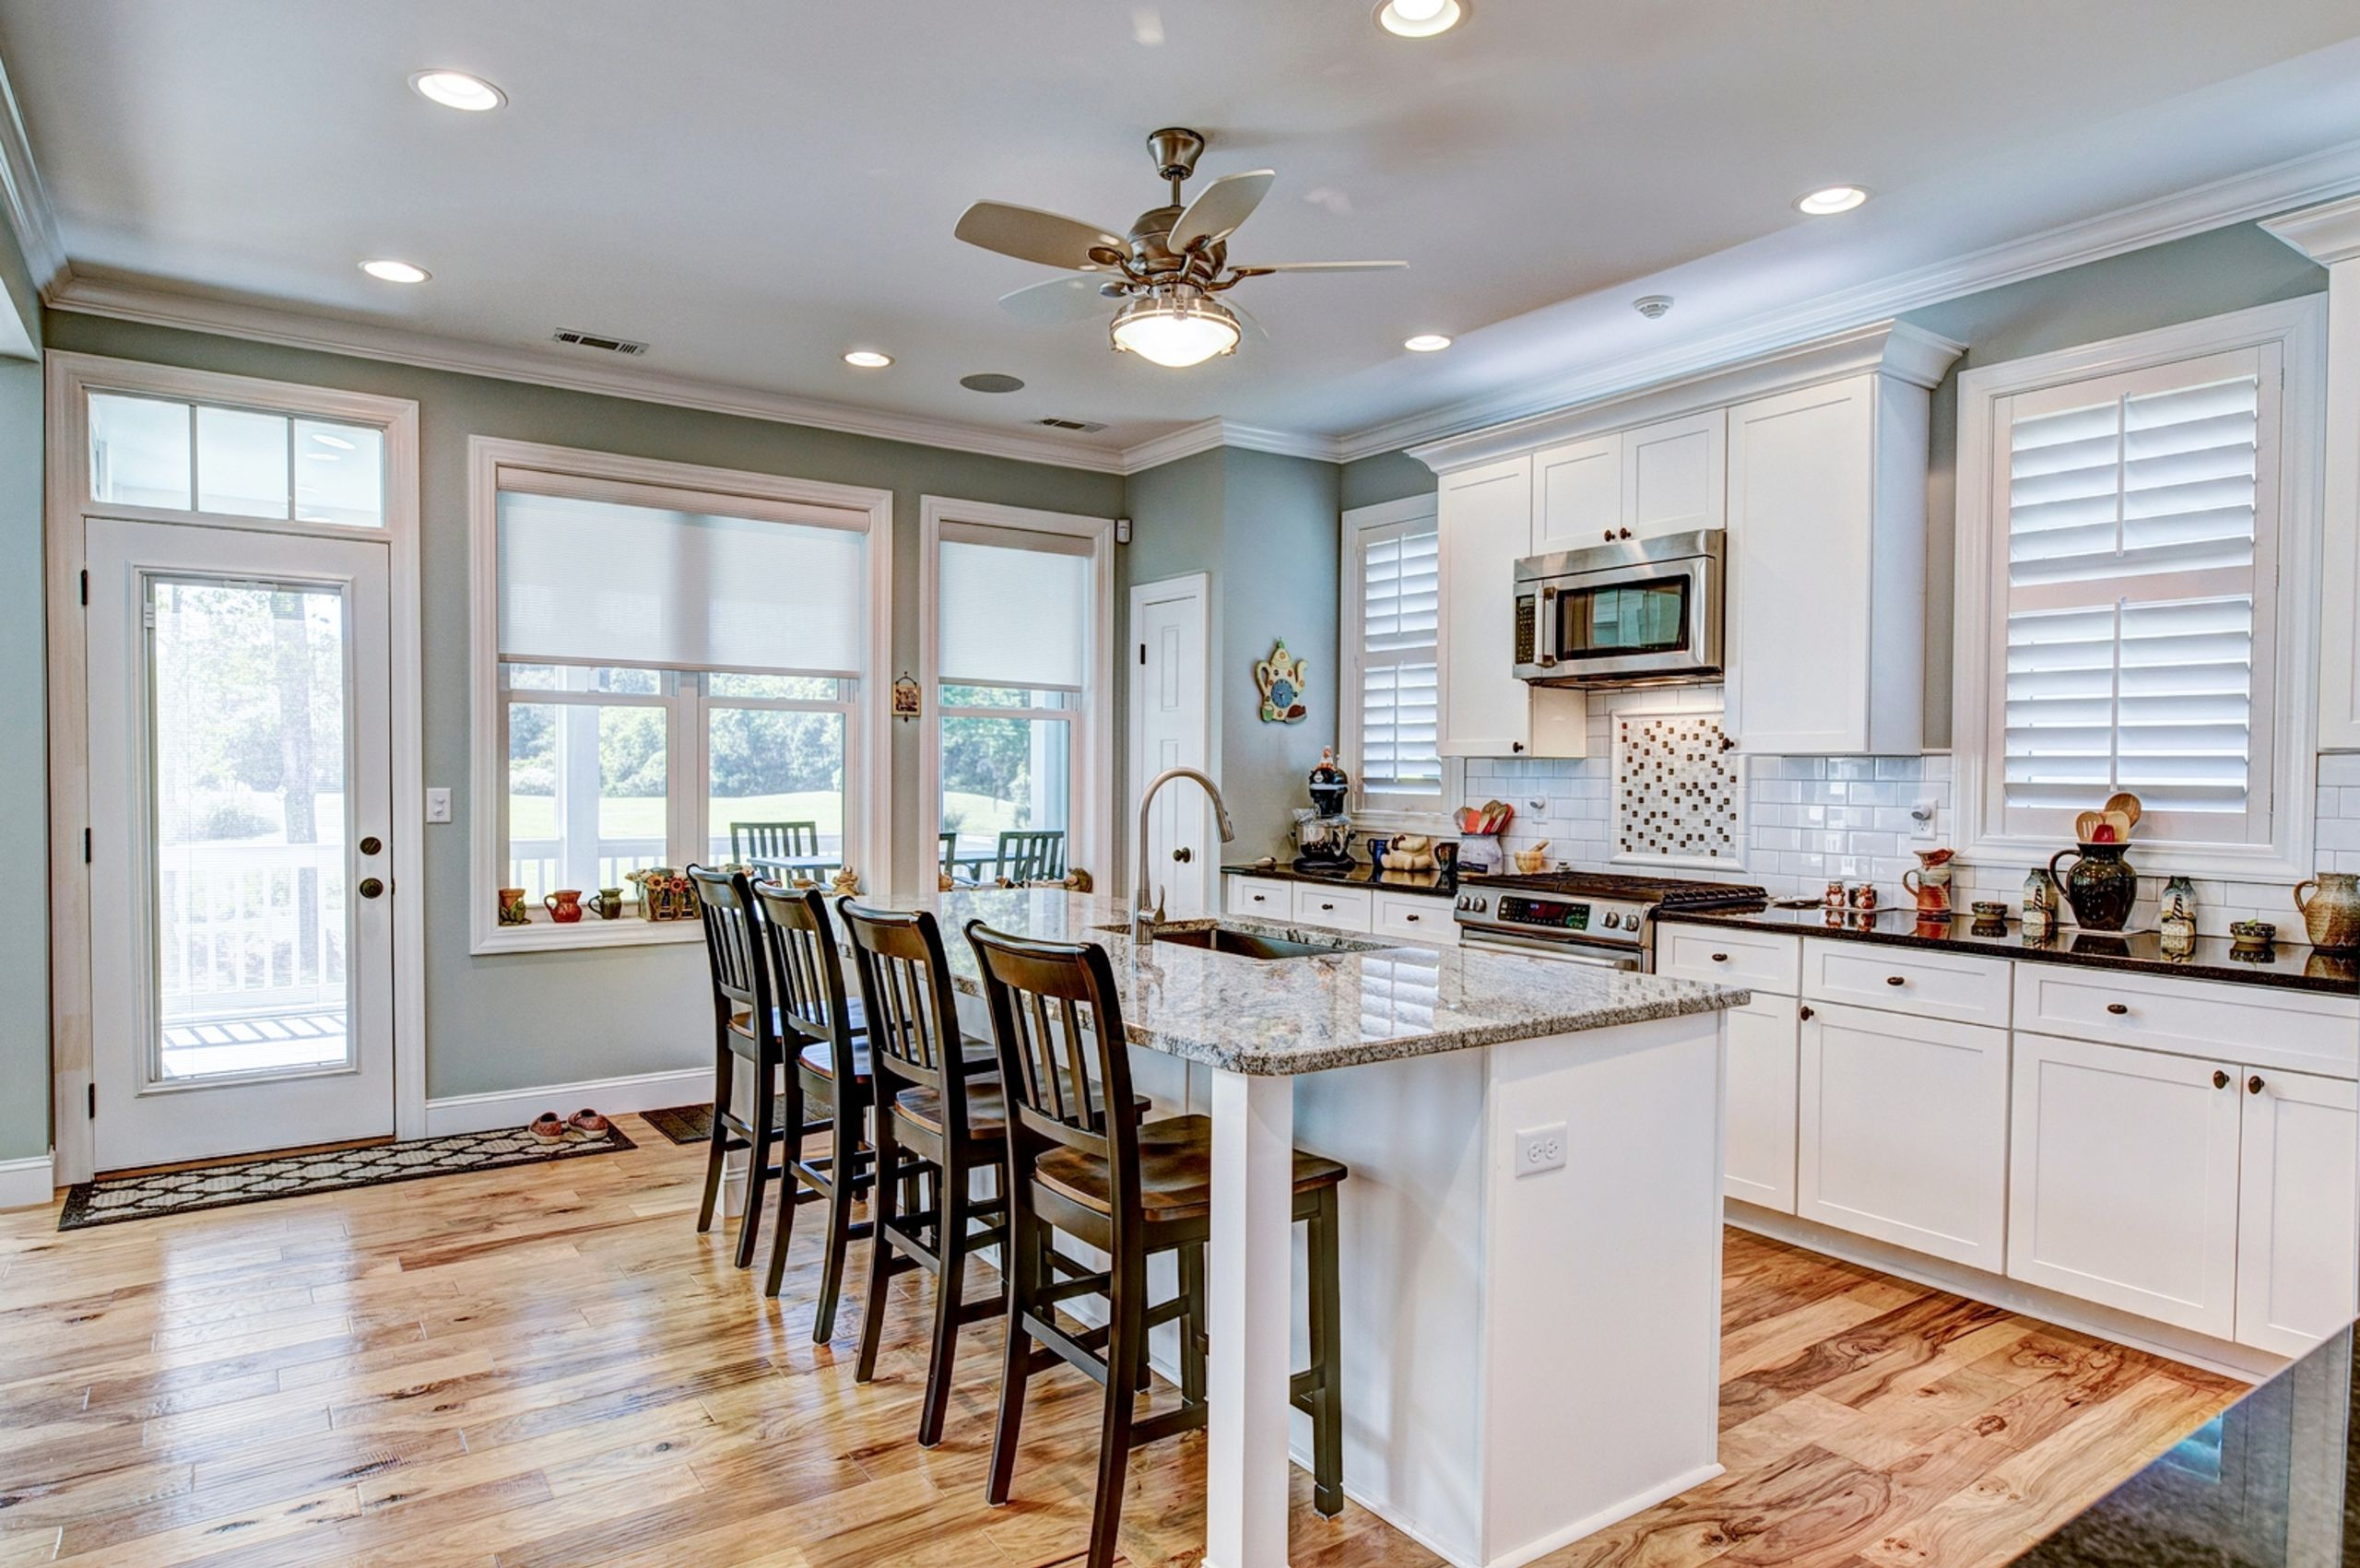 Your New Kitchen will be the Heart of Your Home